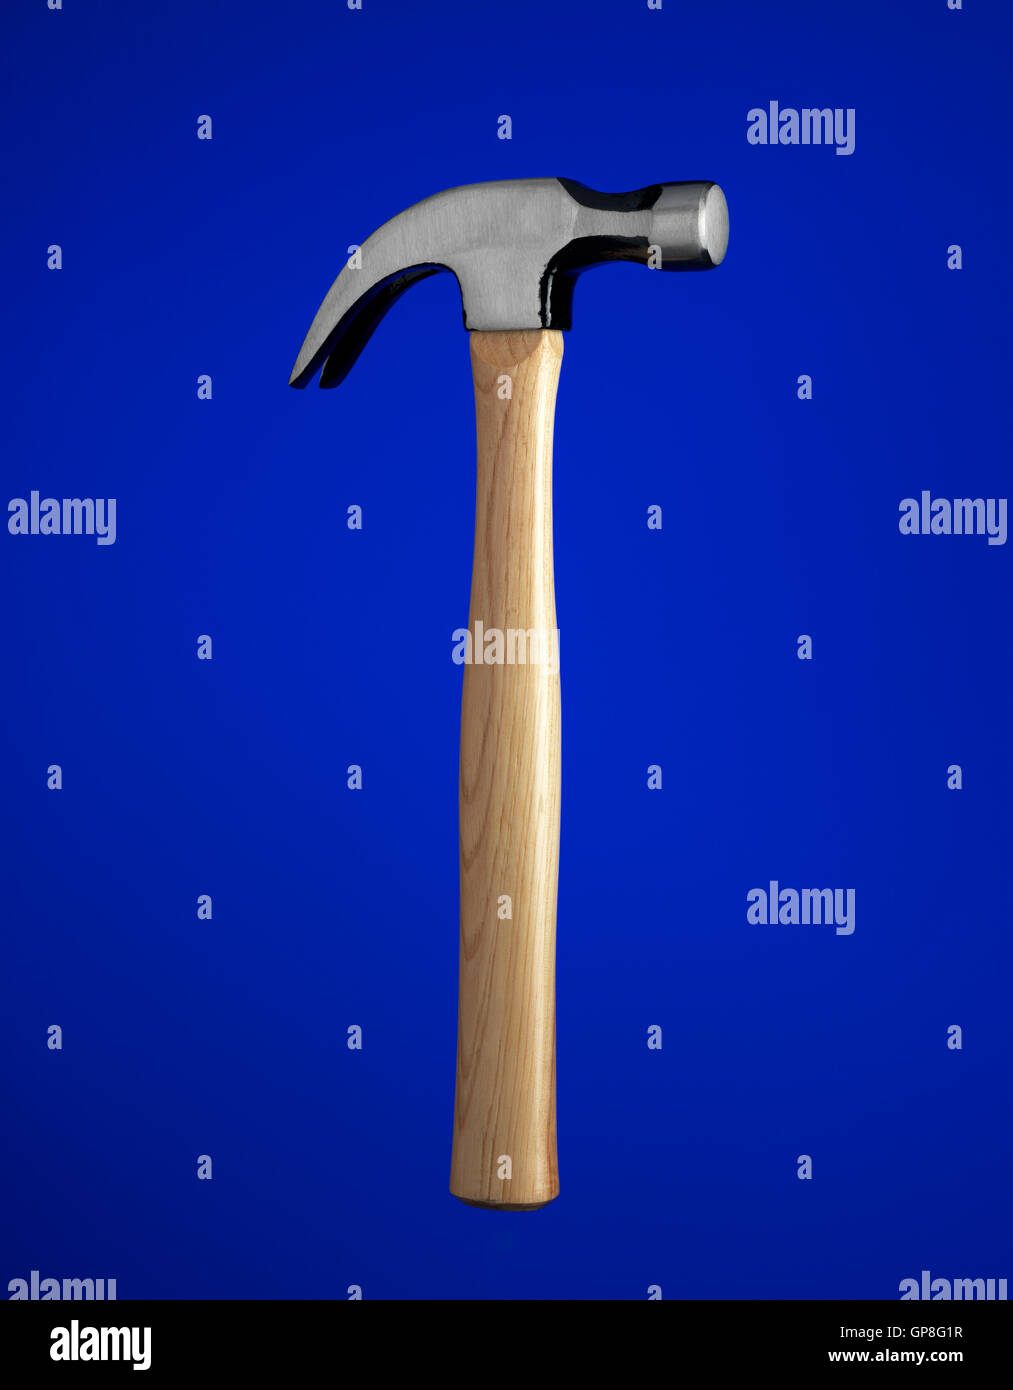 Claw hammer with a blue background - Stock Image